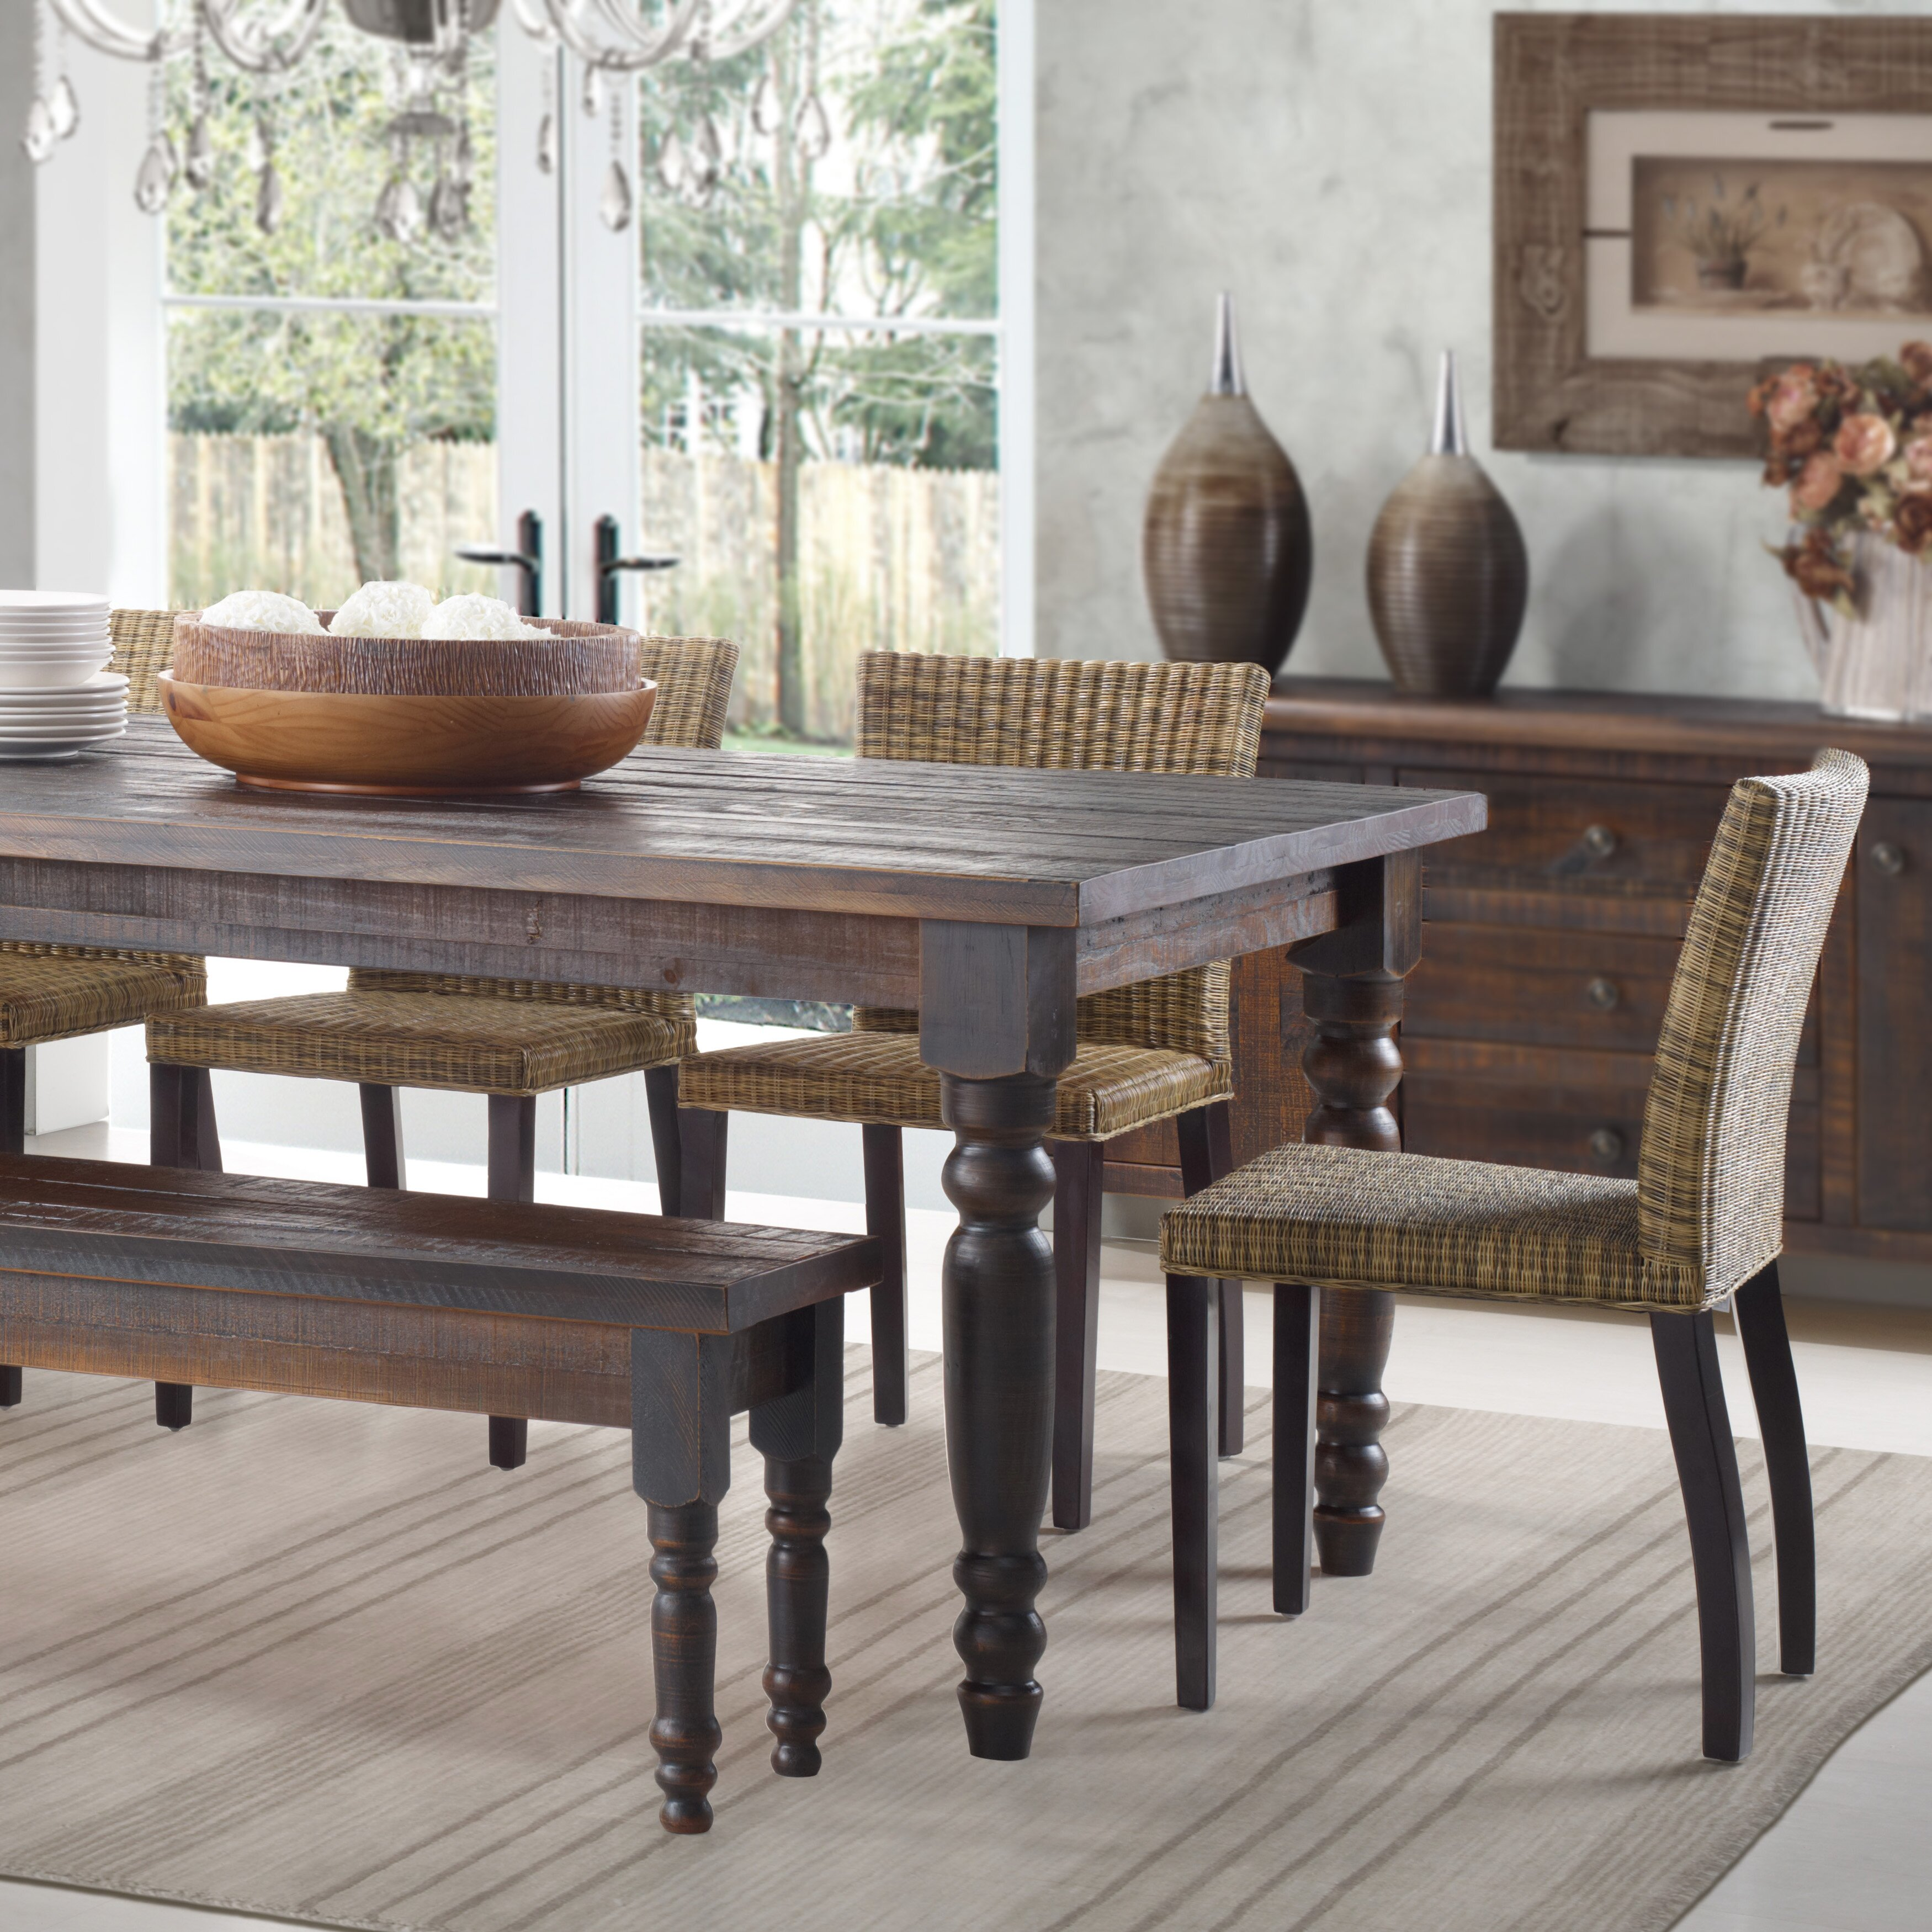 Wooden Kitchen Table Set Grain Wood Furniture Valerie Dining Table Reviews Wayfair